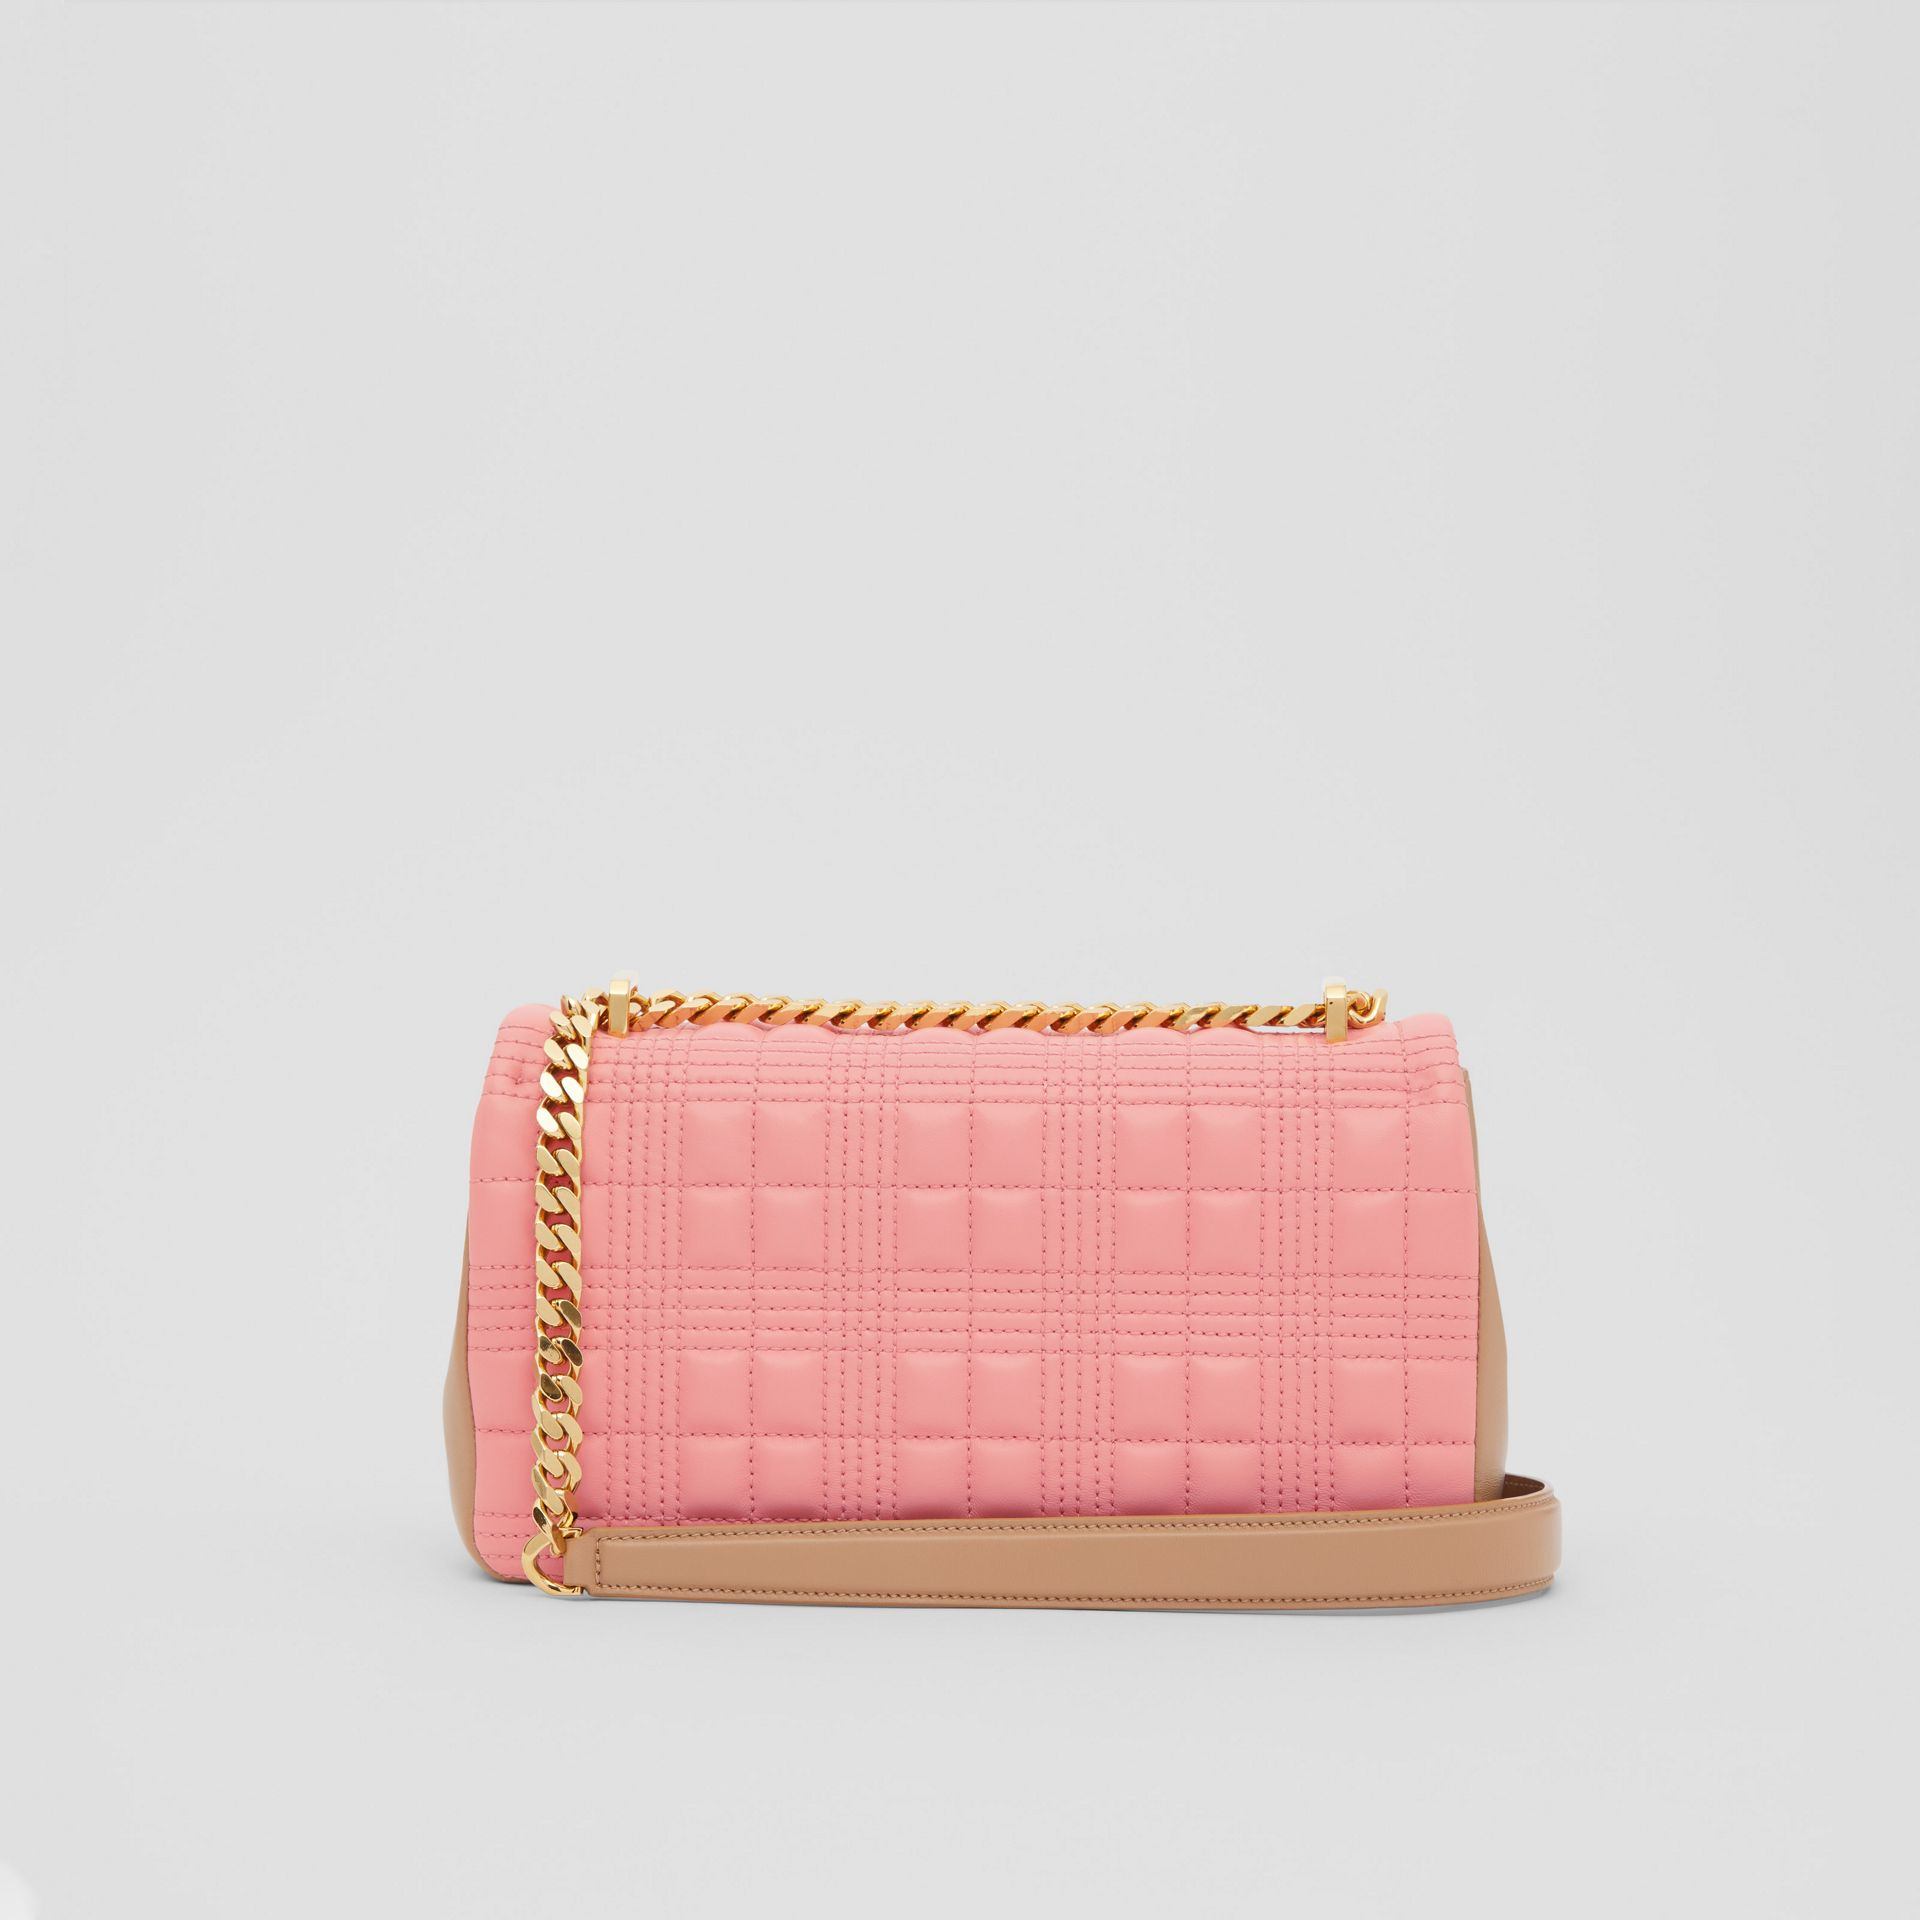 Small Quilted Two-tone Lambskin Lola Bag in Peony/camel - Women | Burberry Canada - gallery image 7